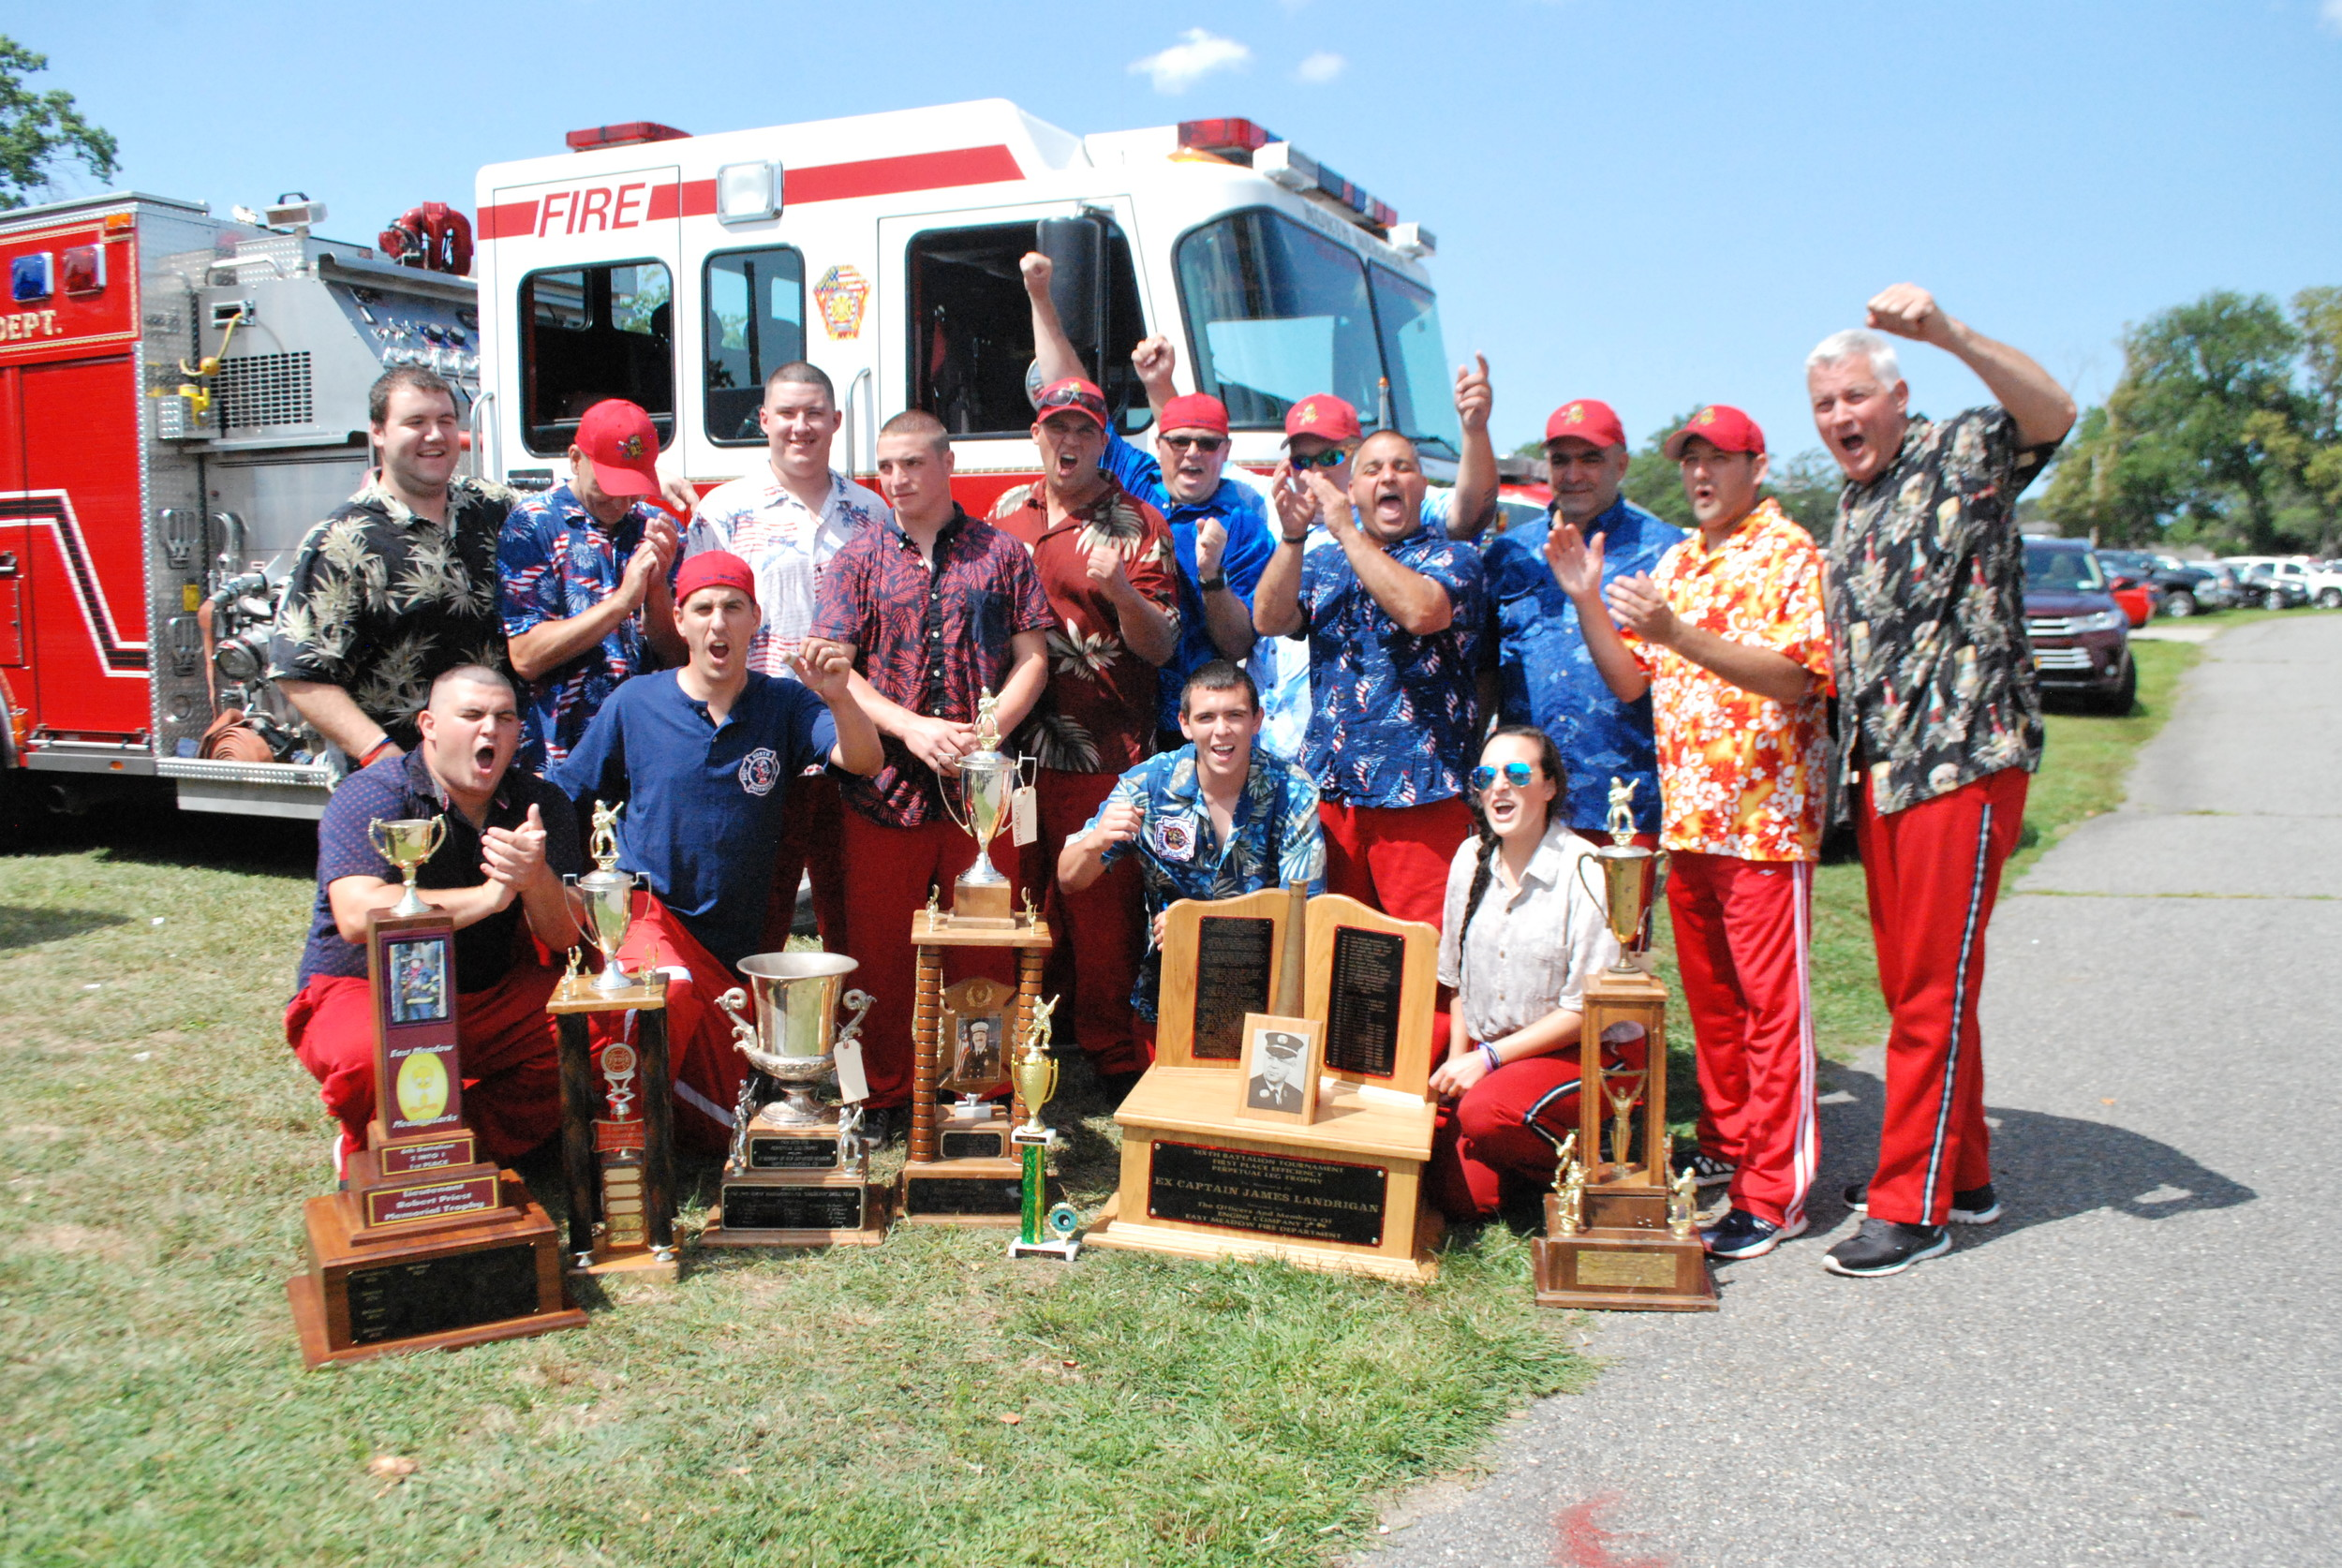 The Stump Jumpers of the North Merrick Fire Department took home first place during this year's 6th Battalion's Old Fashioned Drill, held on Aug. 26 at the 4 Towns Training Center Merrick.